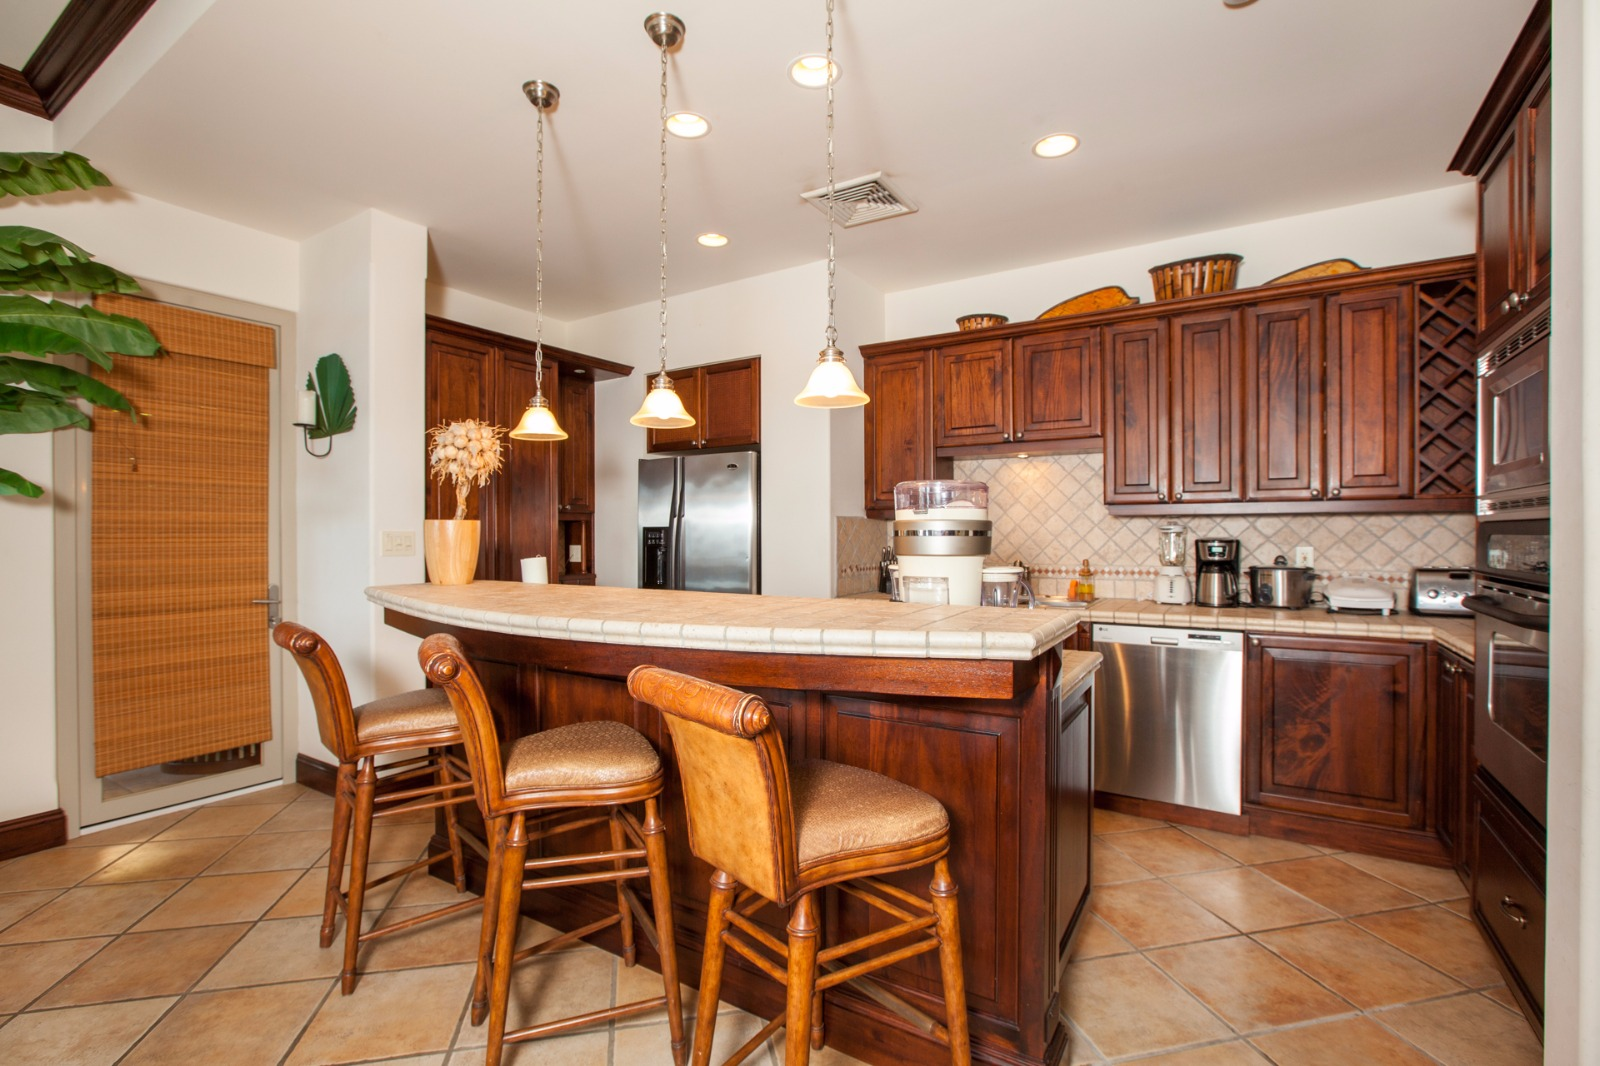 kitchen with counter and chairs